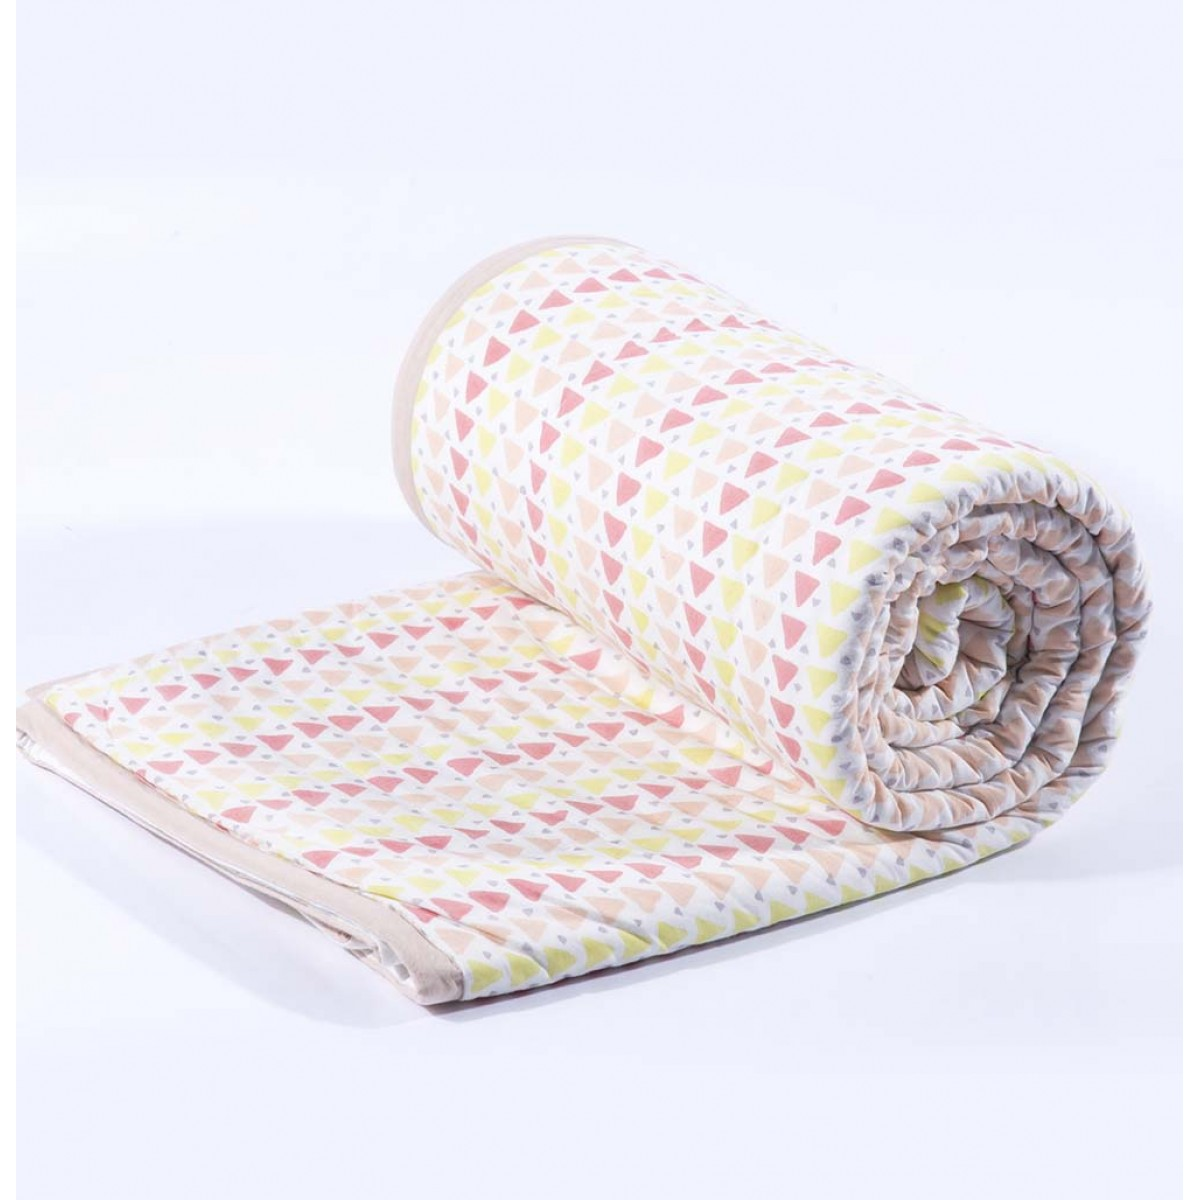 Geometry pink single quilt